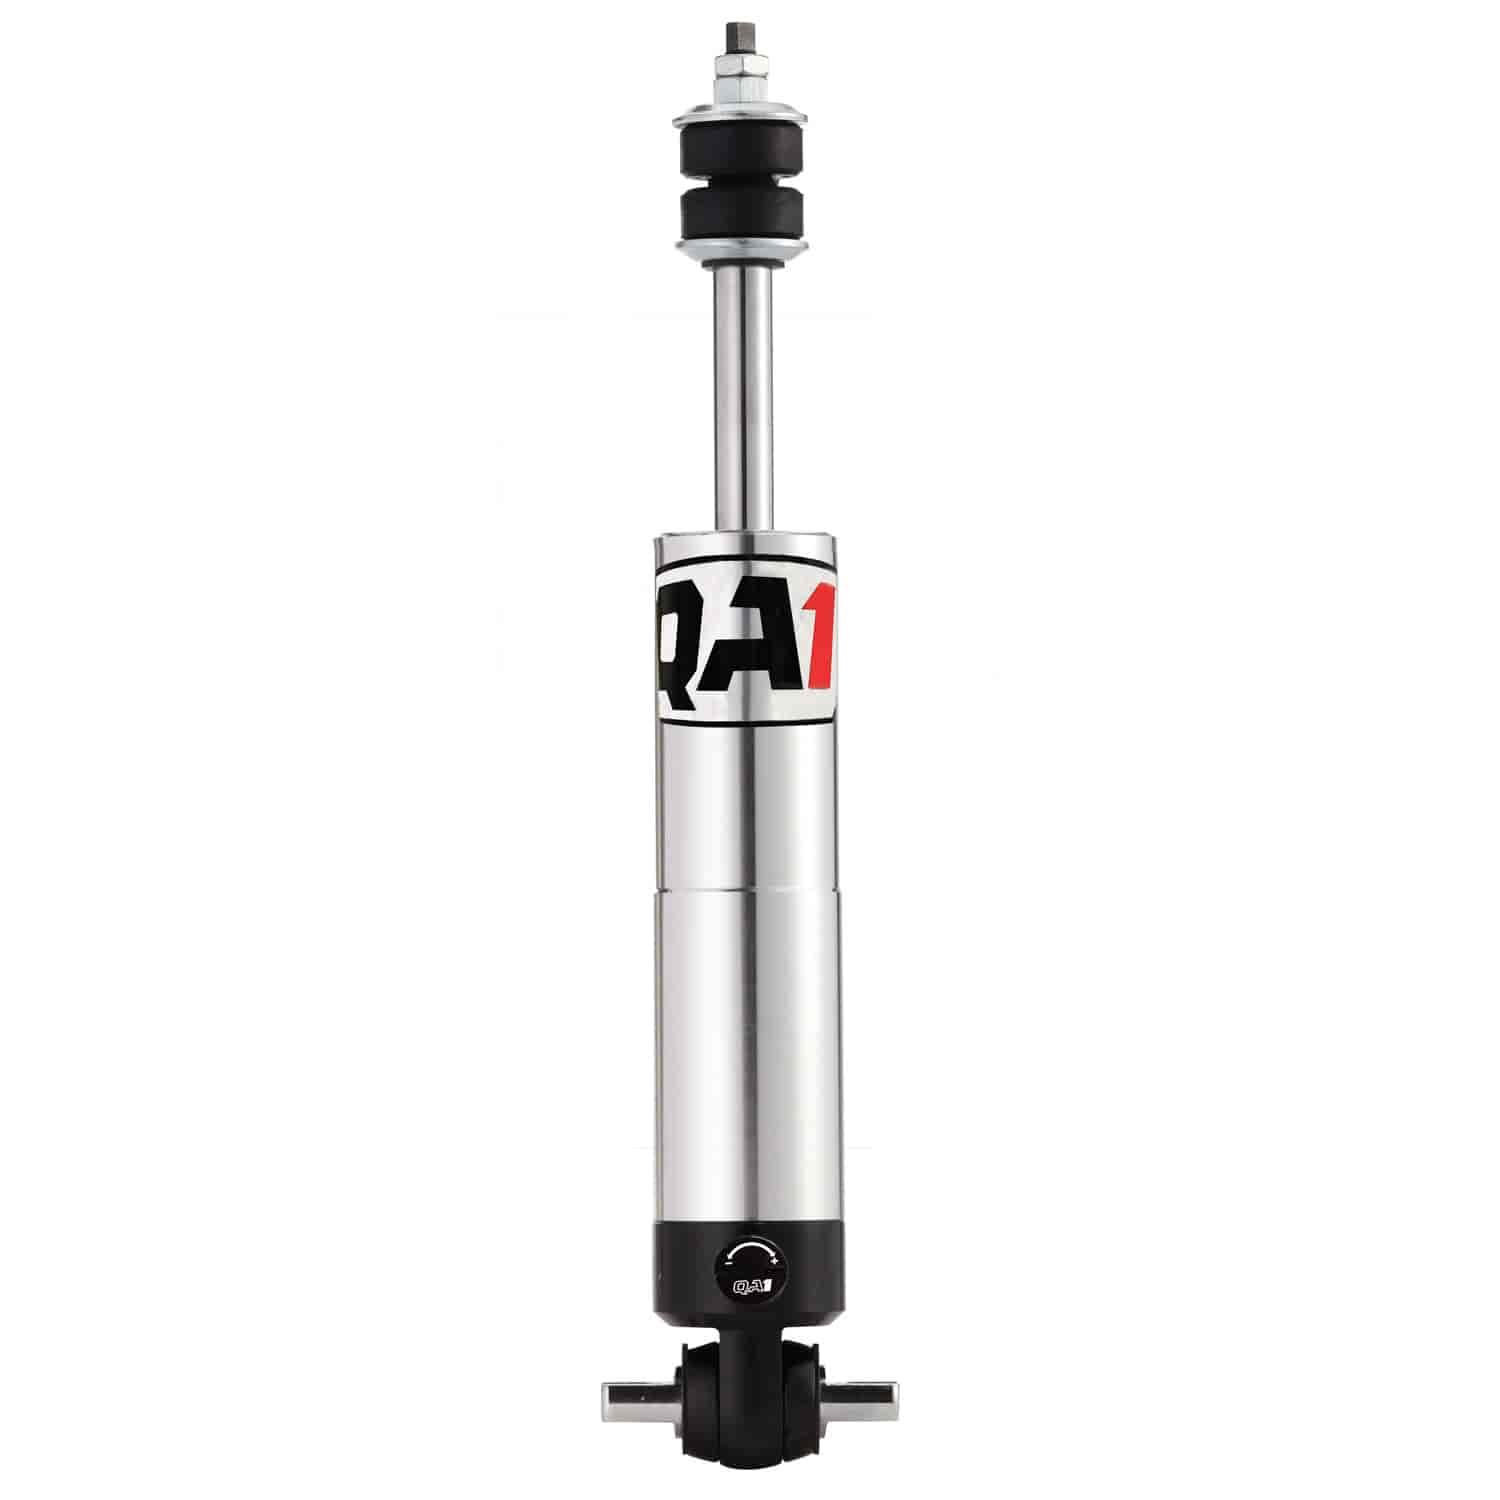 QA1 TS510 - QA1 Stocker Star Adjustable Shocks